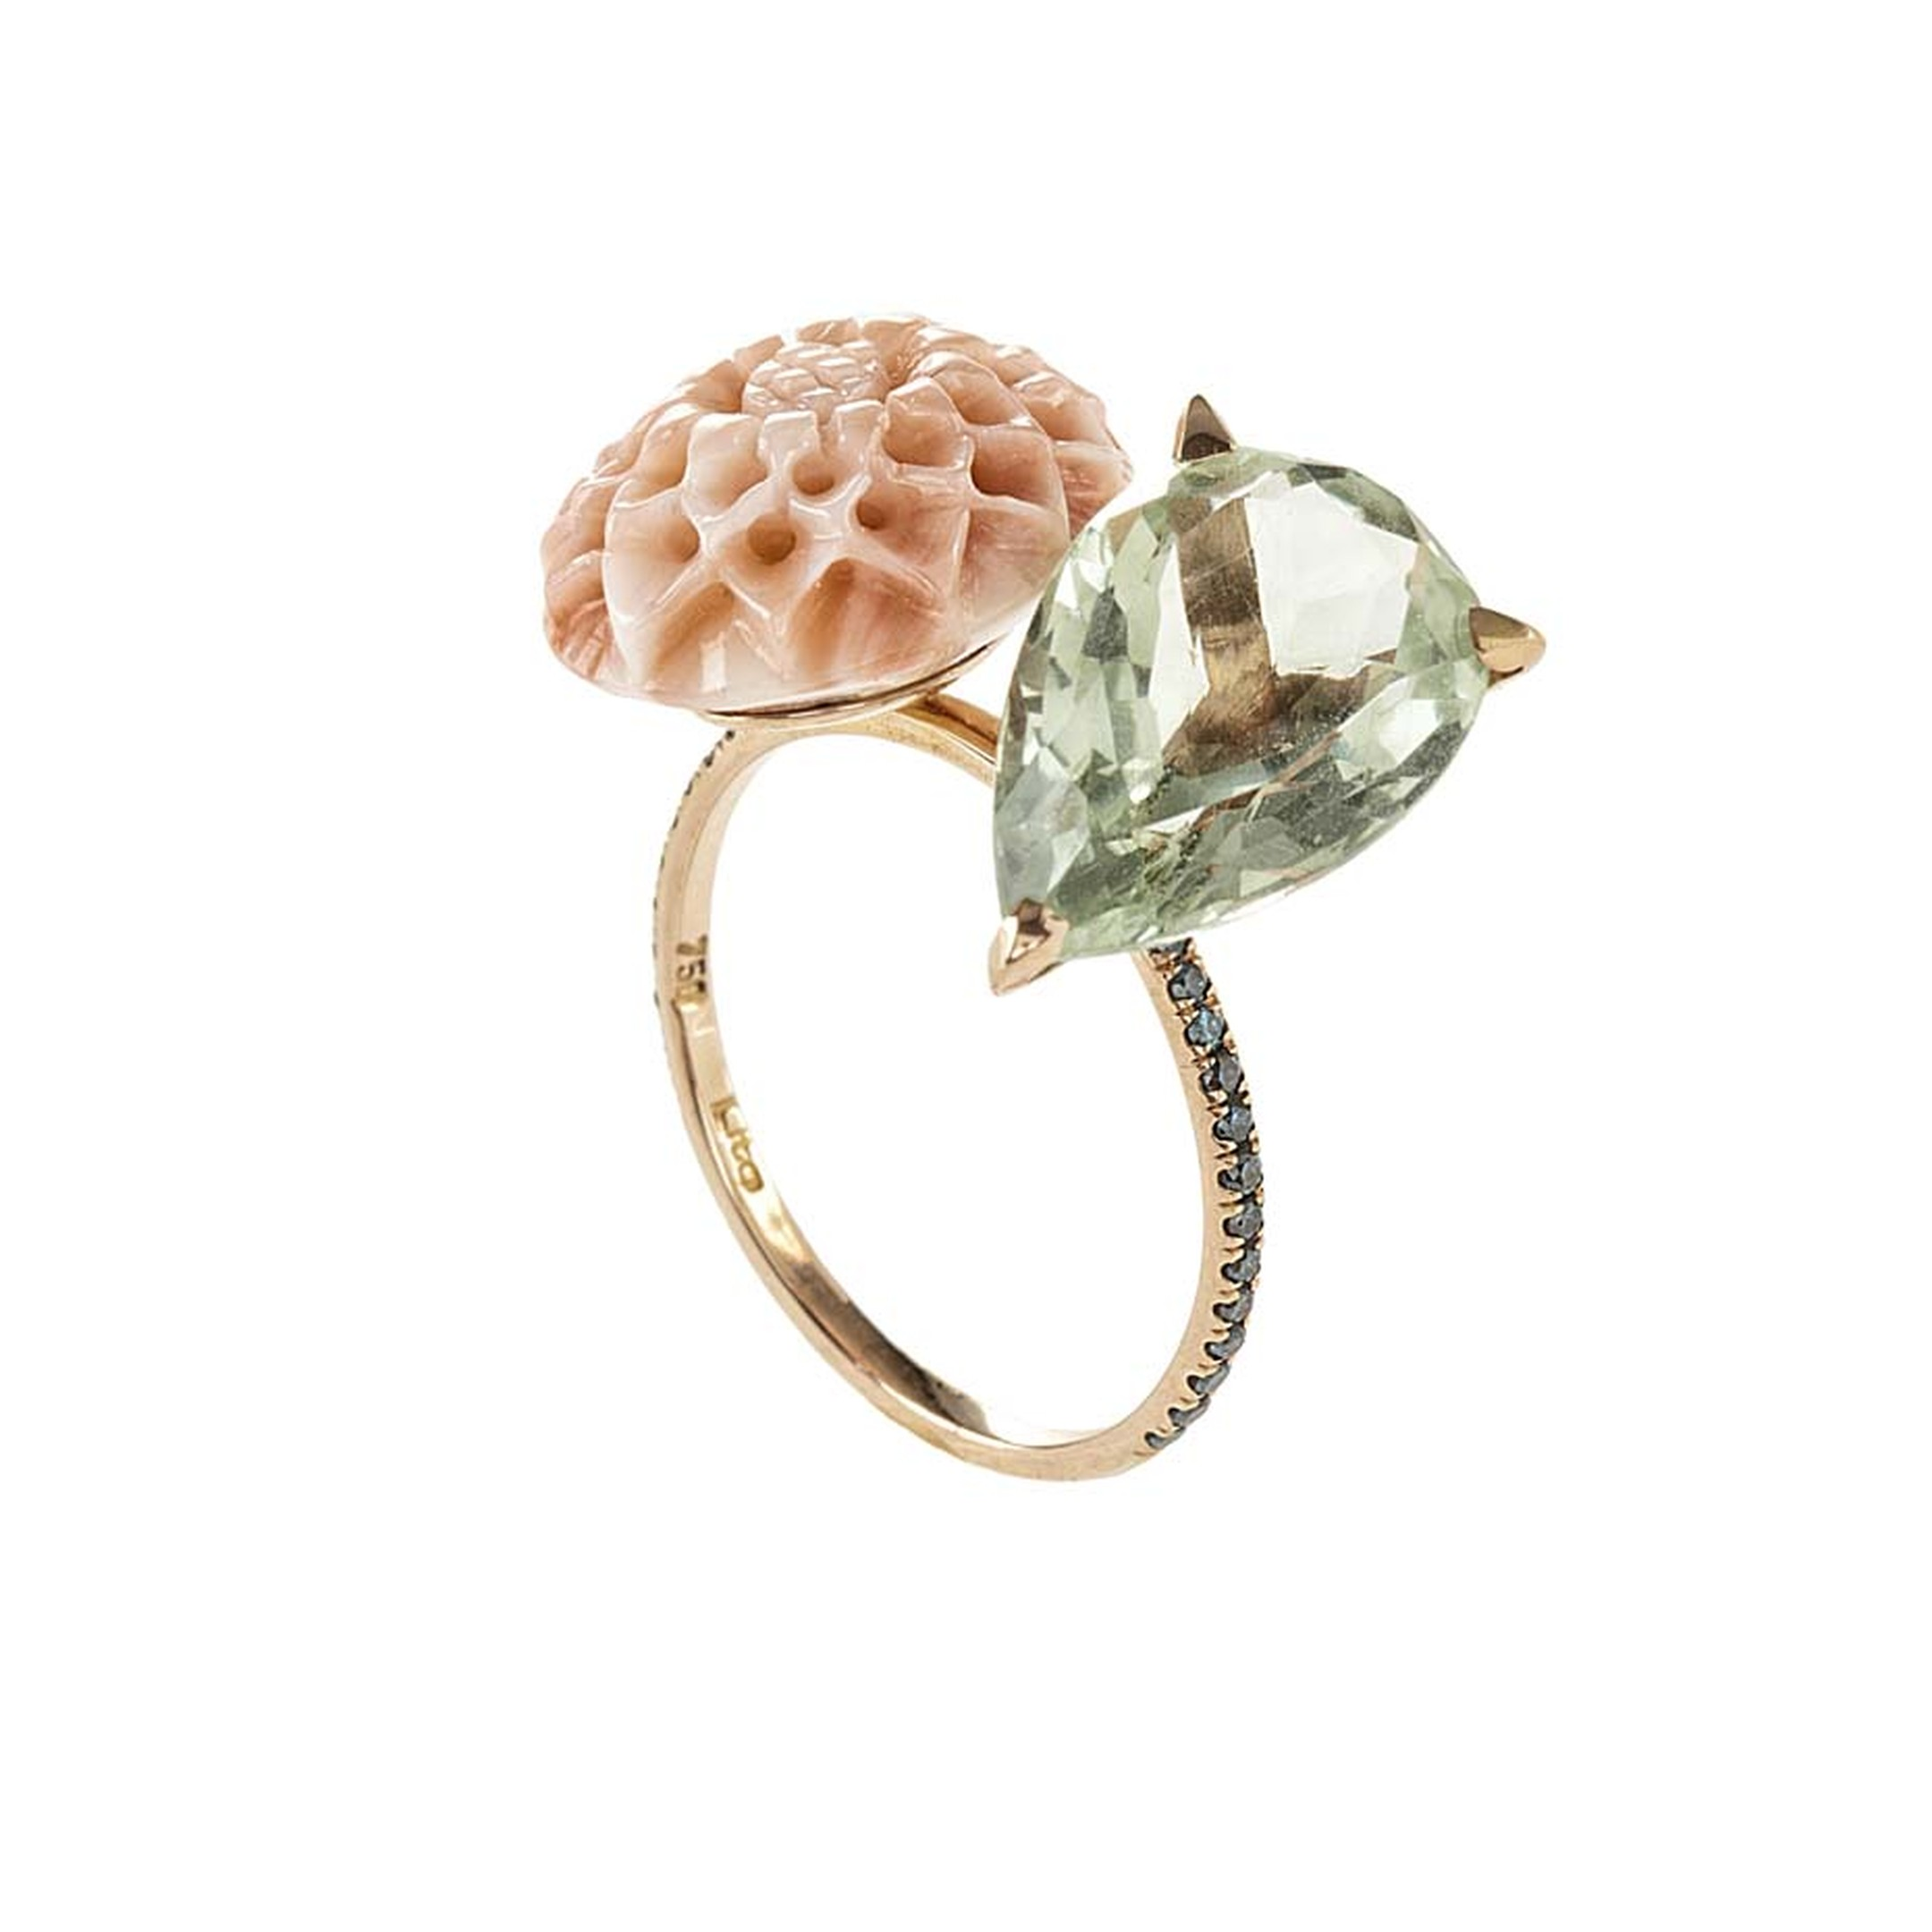 Lito pink gold ring with a 2.5ct green pear-cut amethyst, coral dahlia and blue brilliant-cut diamonds